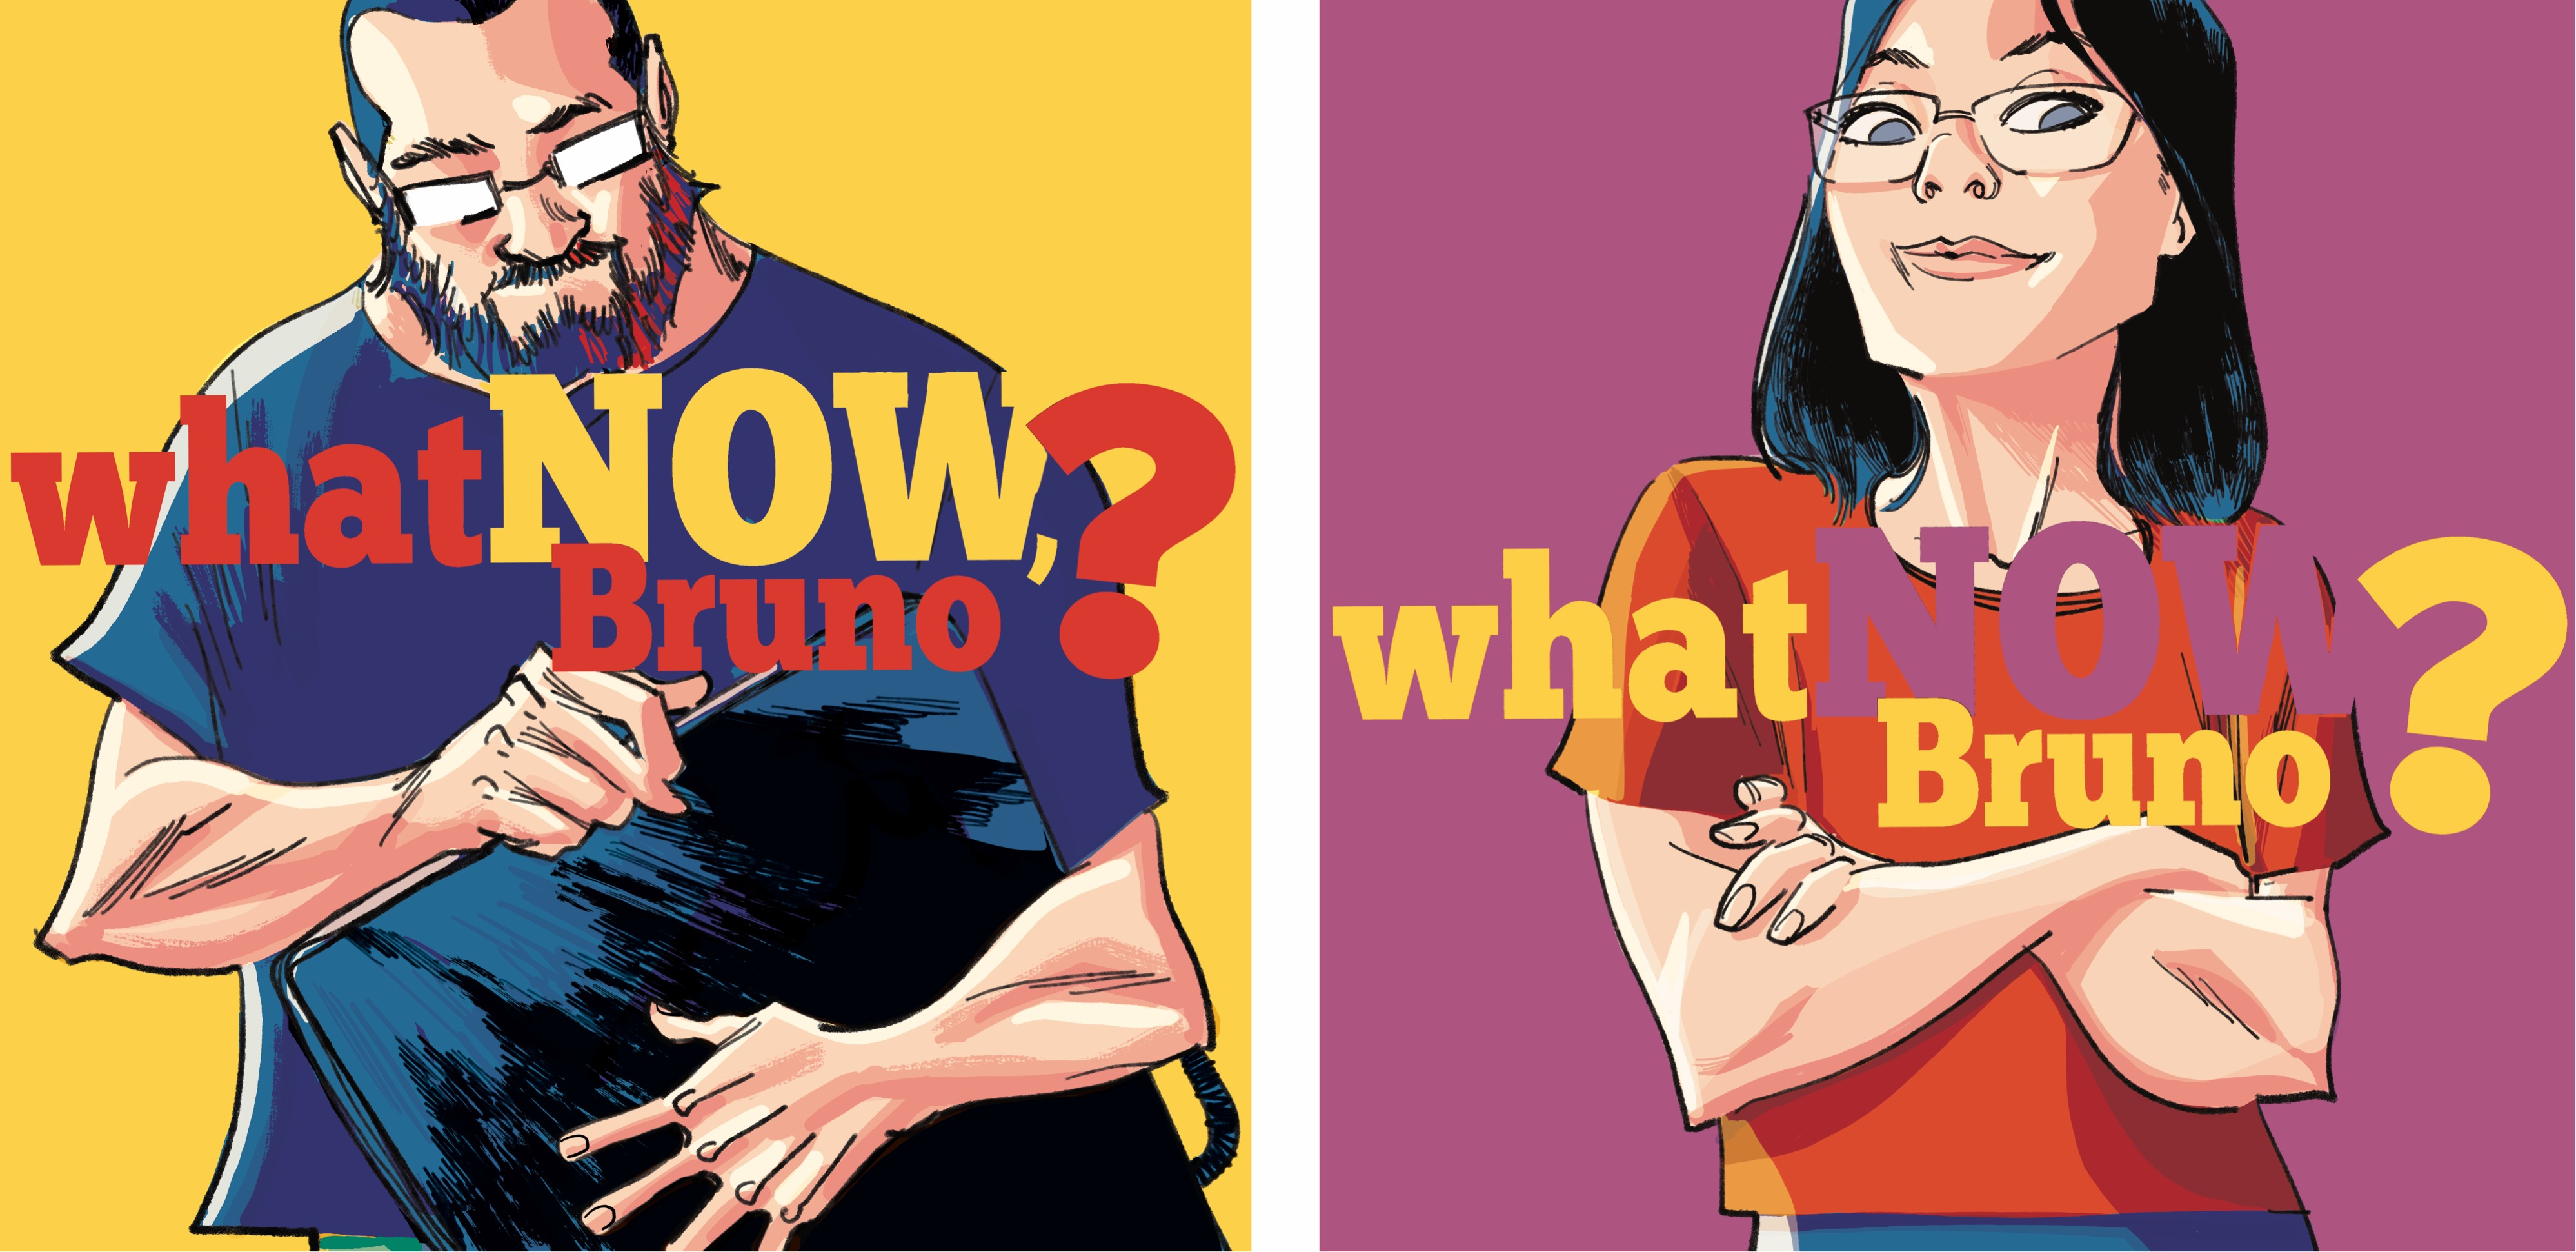 WHAT NOW BRUNO? | Desenhista da Marvel lança HQ autobiográfica